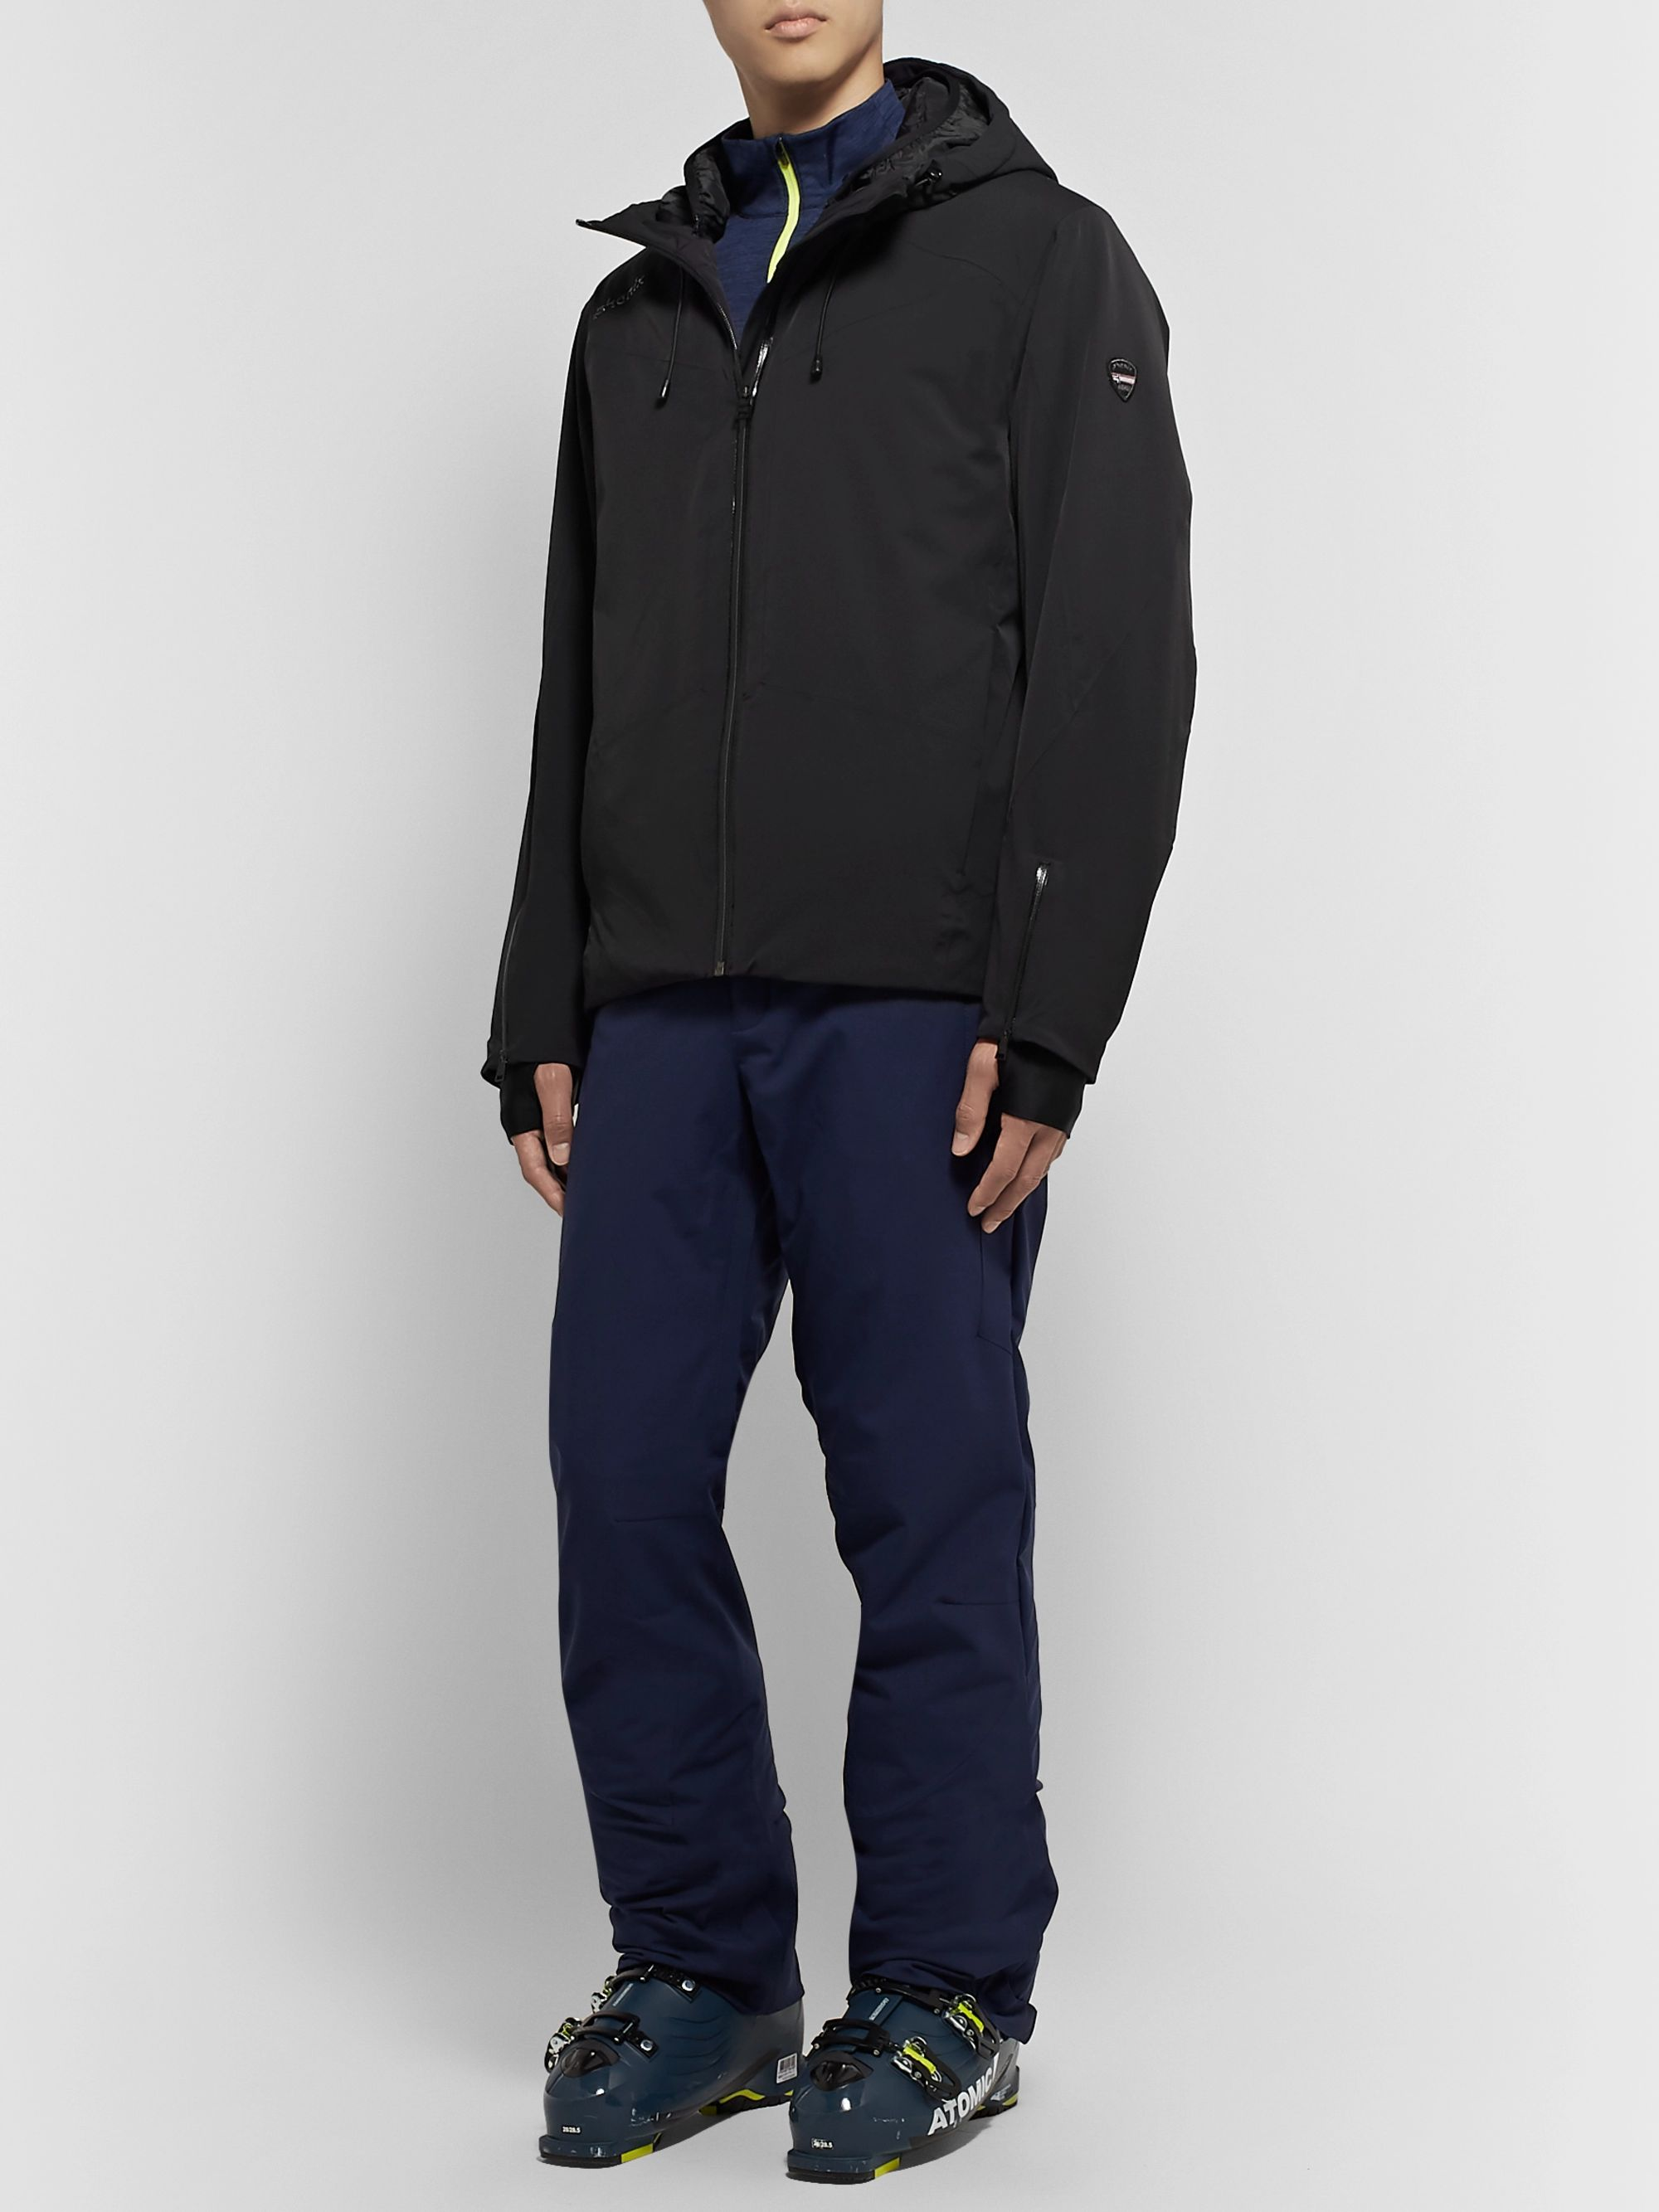 Phenix Geiranger Phenix 20,000mmH2O Hooded Ski Jacket